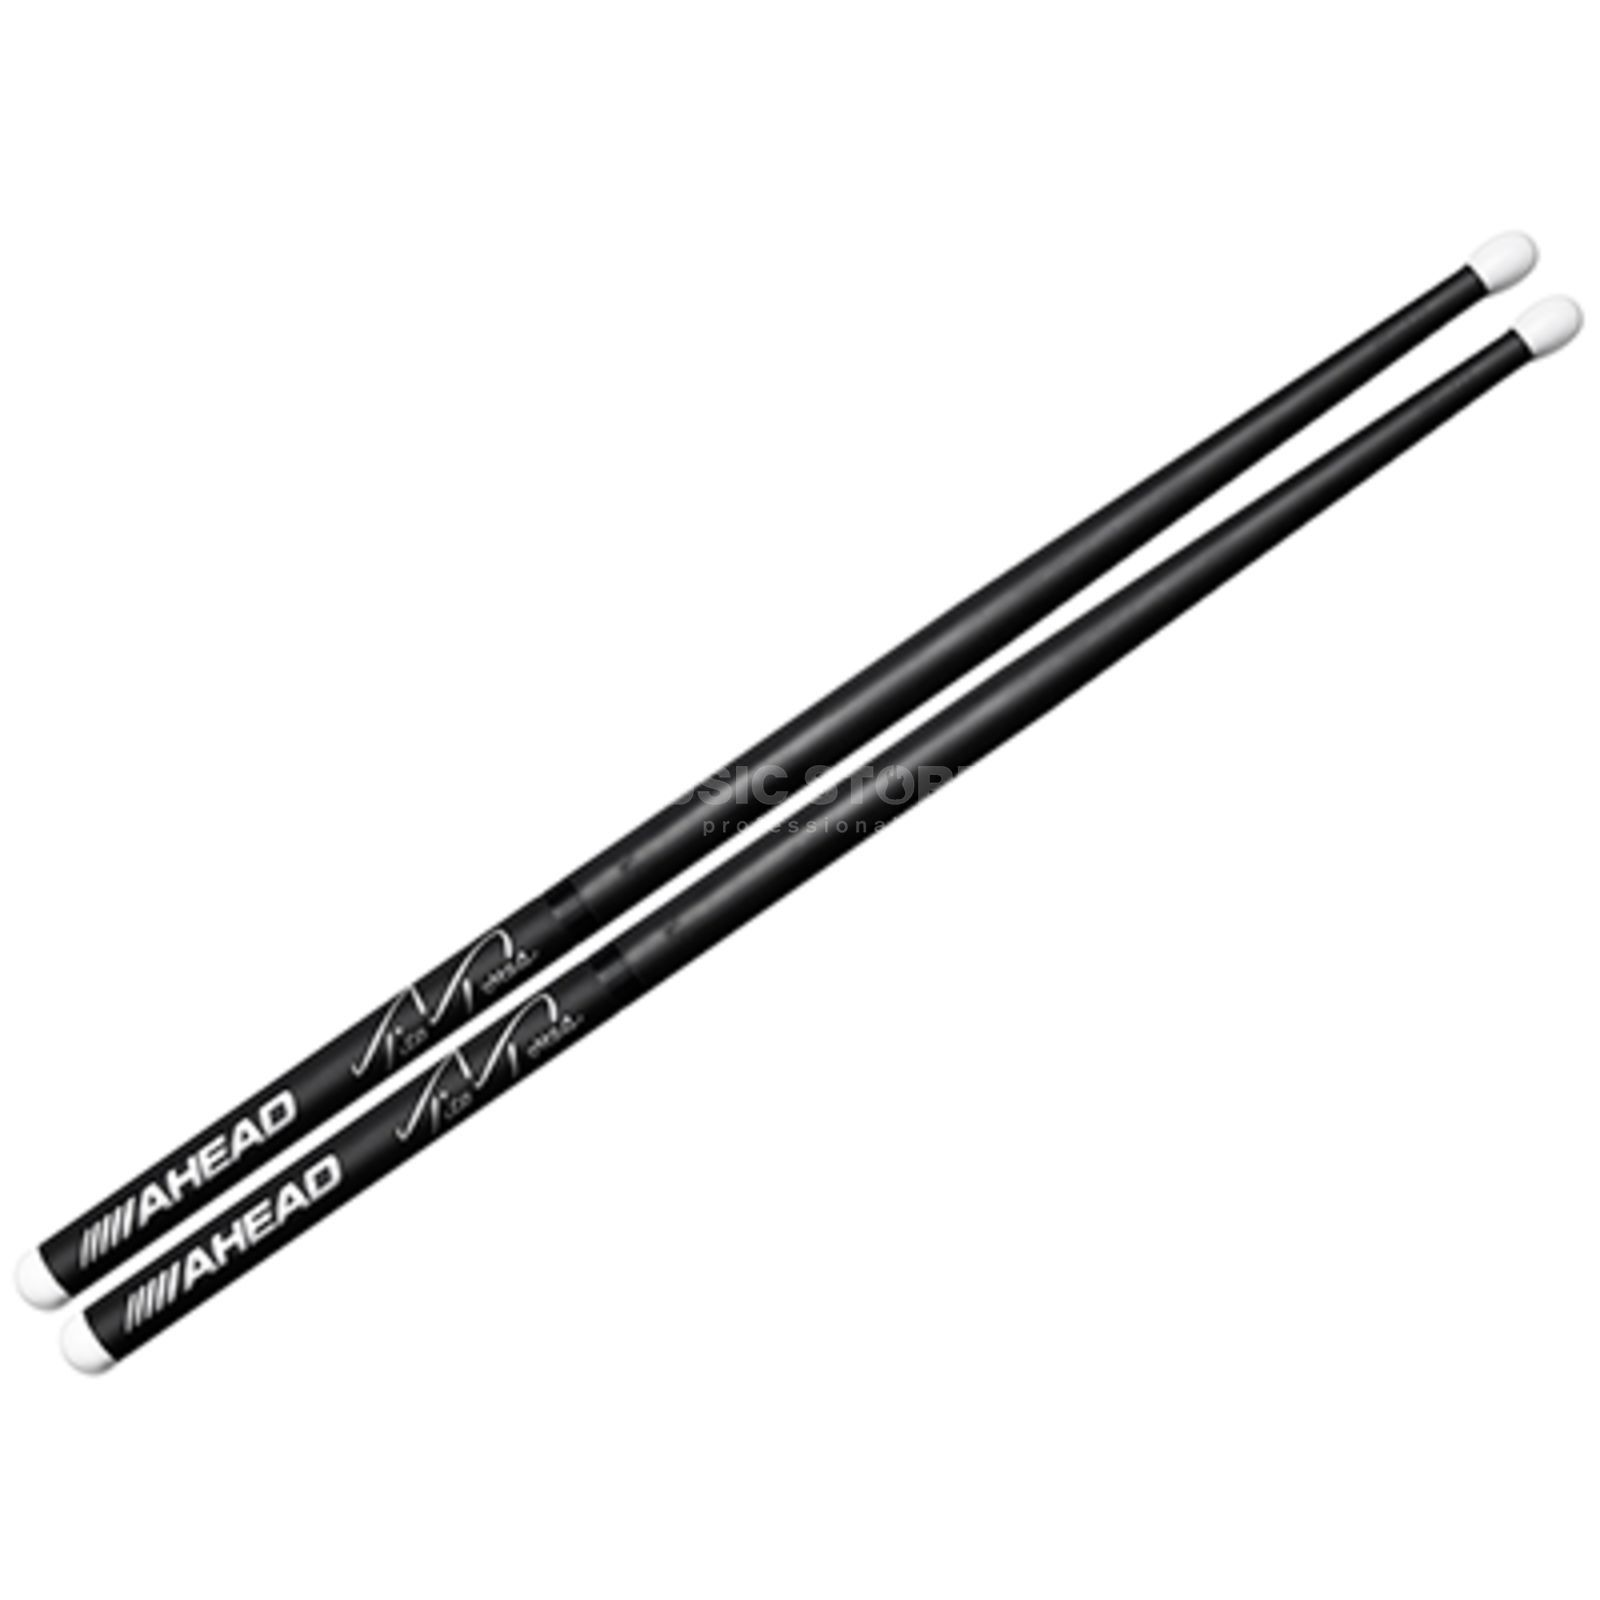 Ahead Sticks TT Tico Torres Alu-Sticks Long Taper Produktbillede